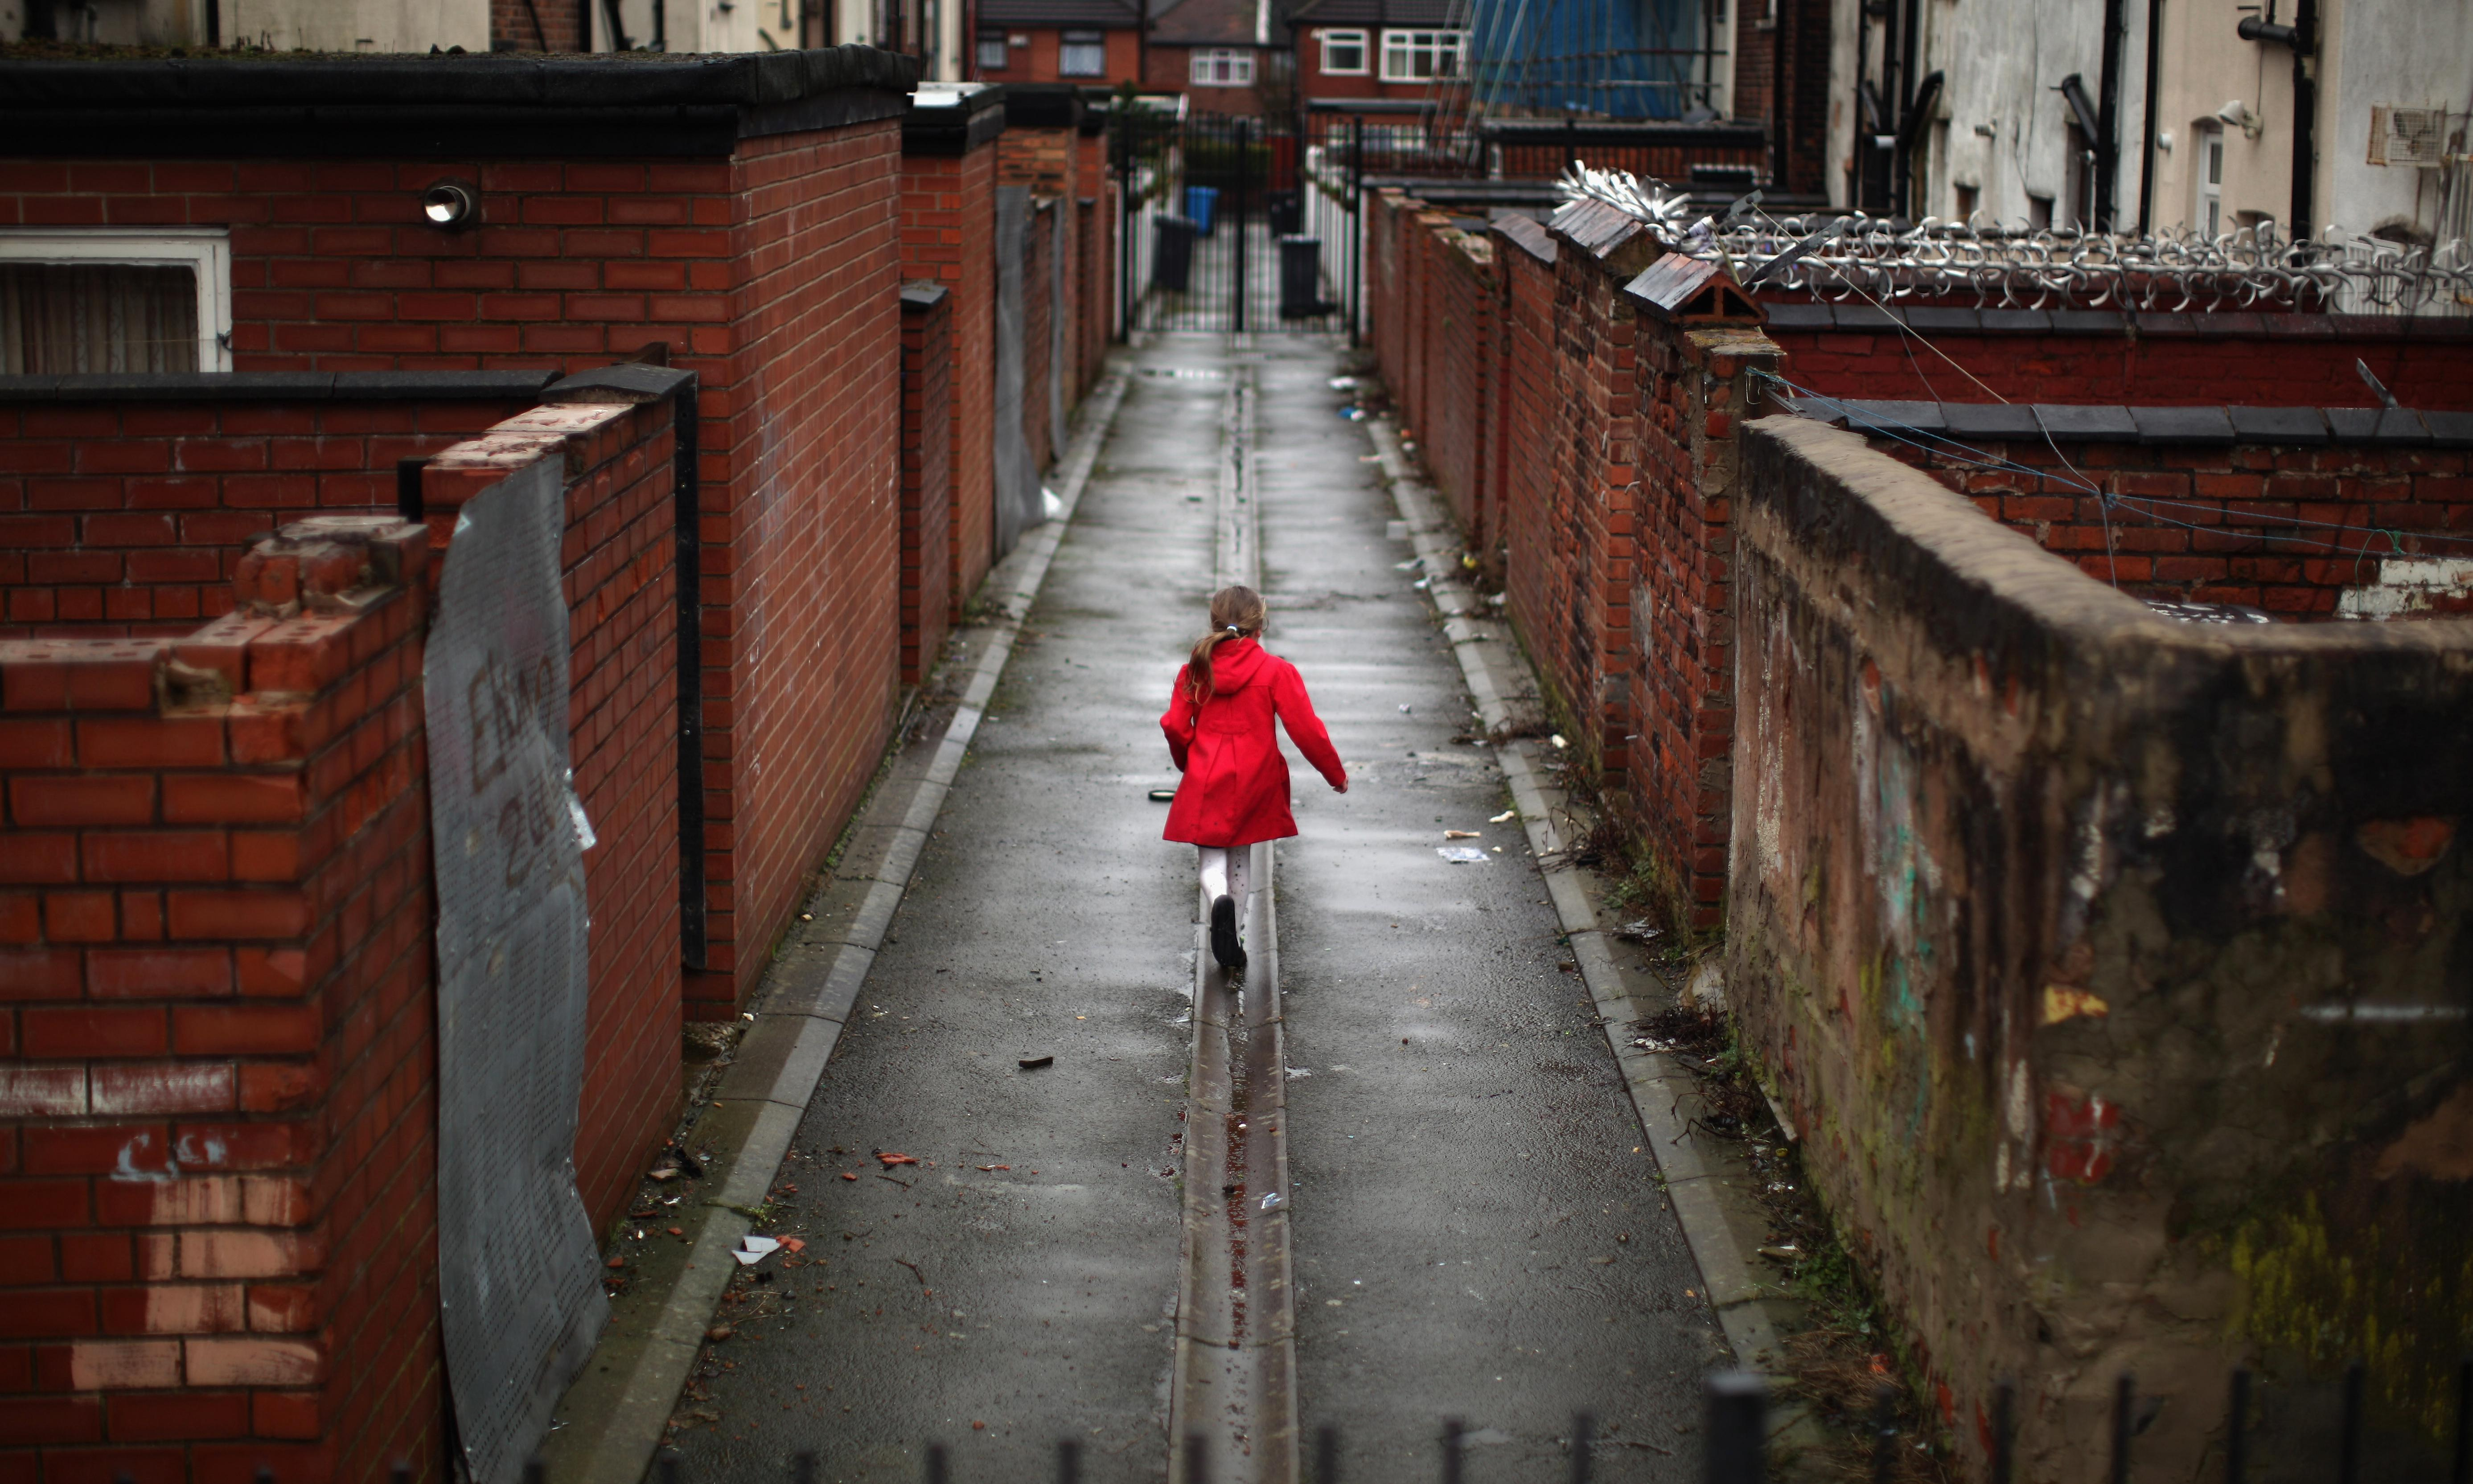 Hungry, unwashed children fill our schools – how has it come to this?